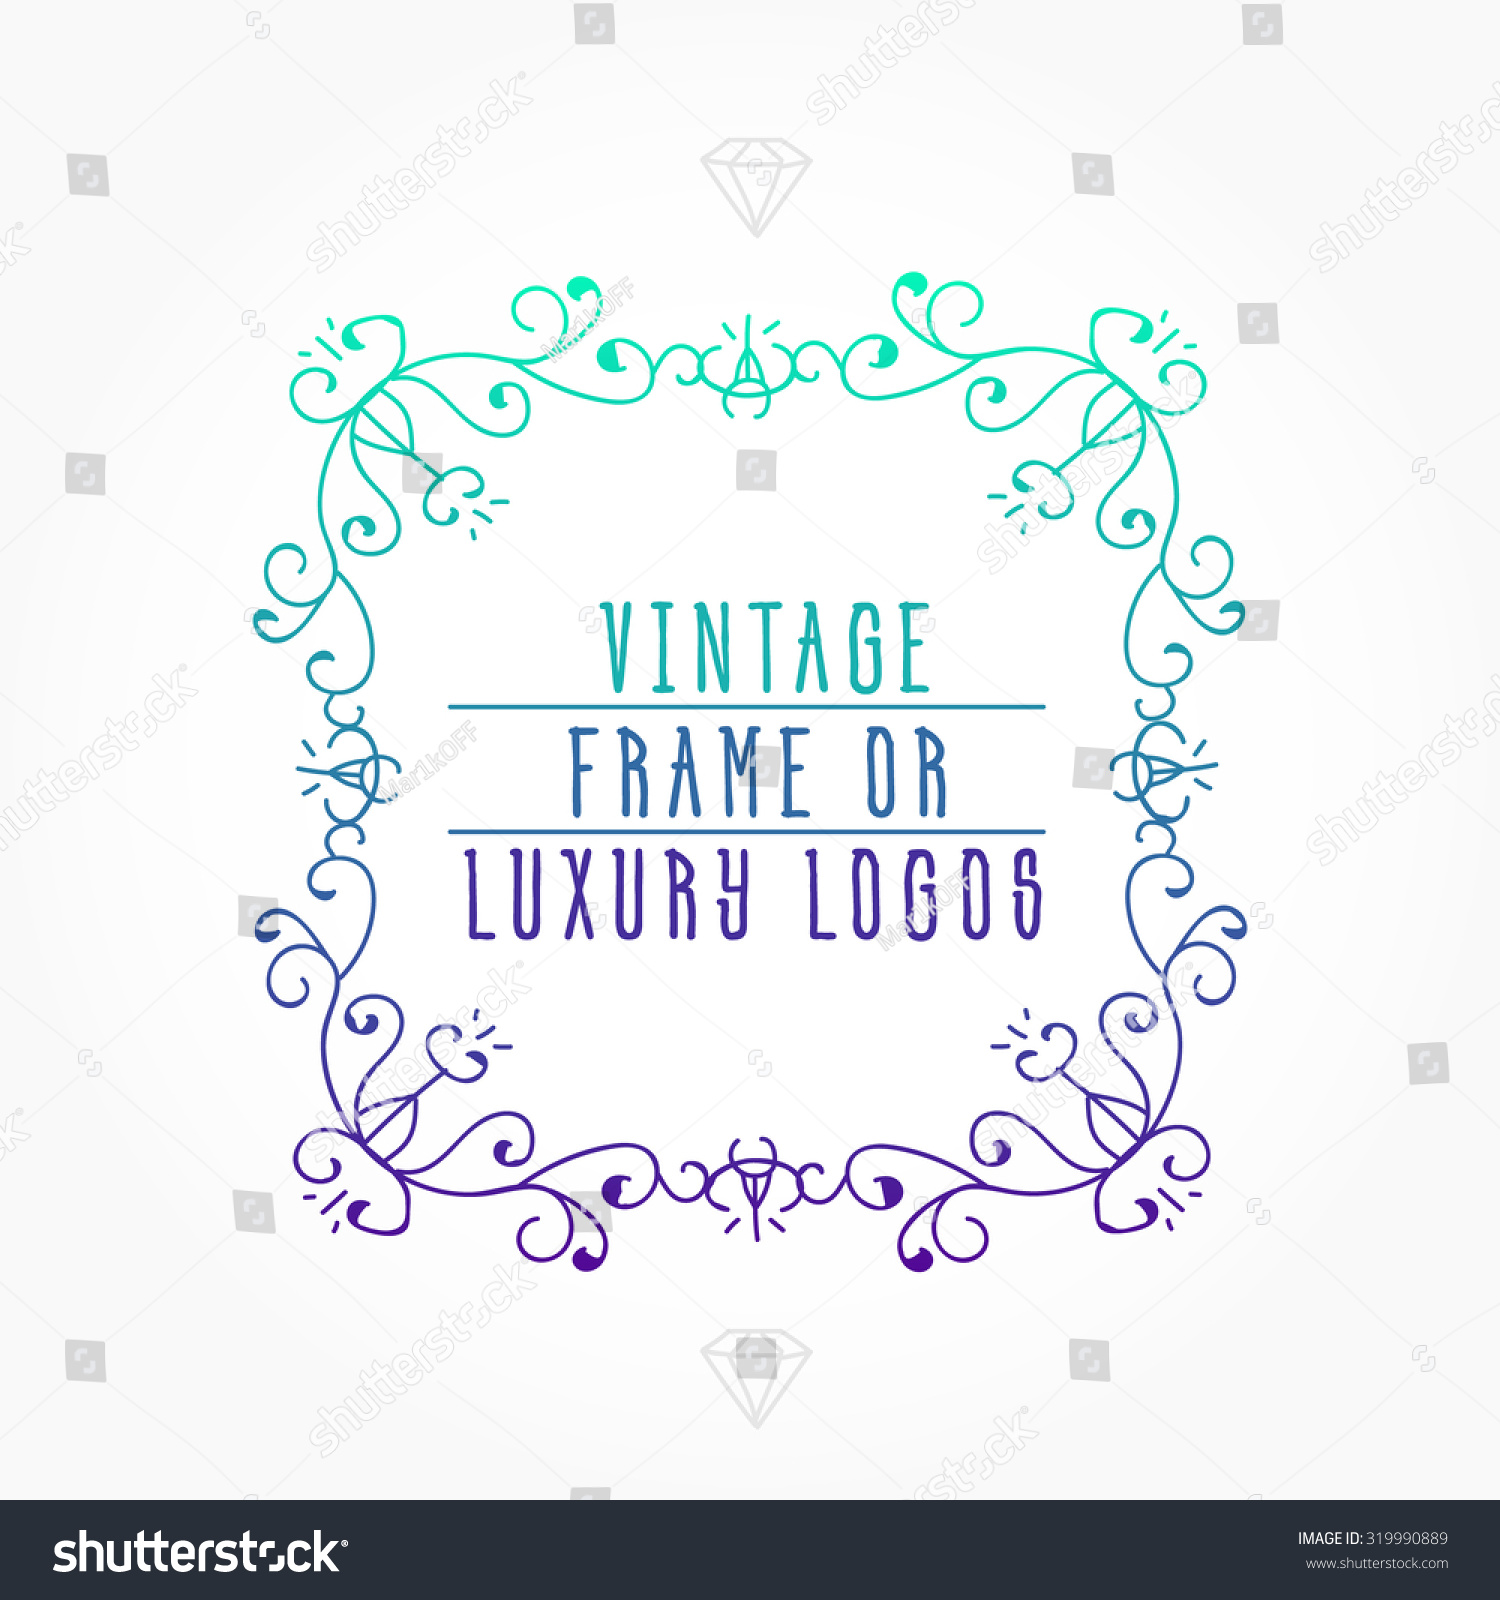 Vintage Frame Luxury Logos Greeting Cards Stock Vector 2018